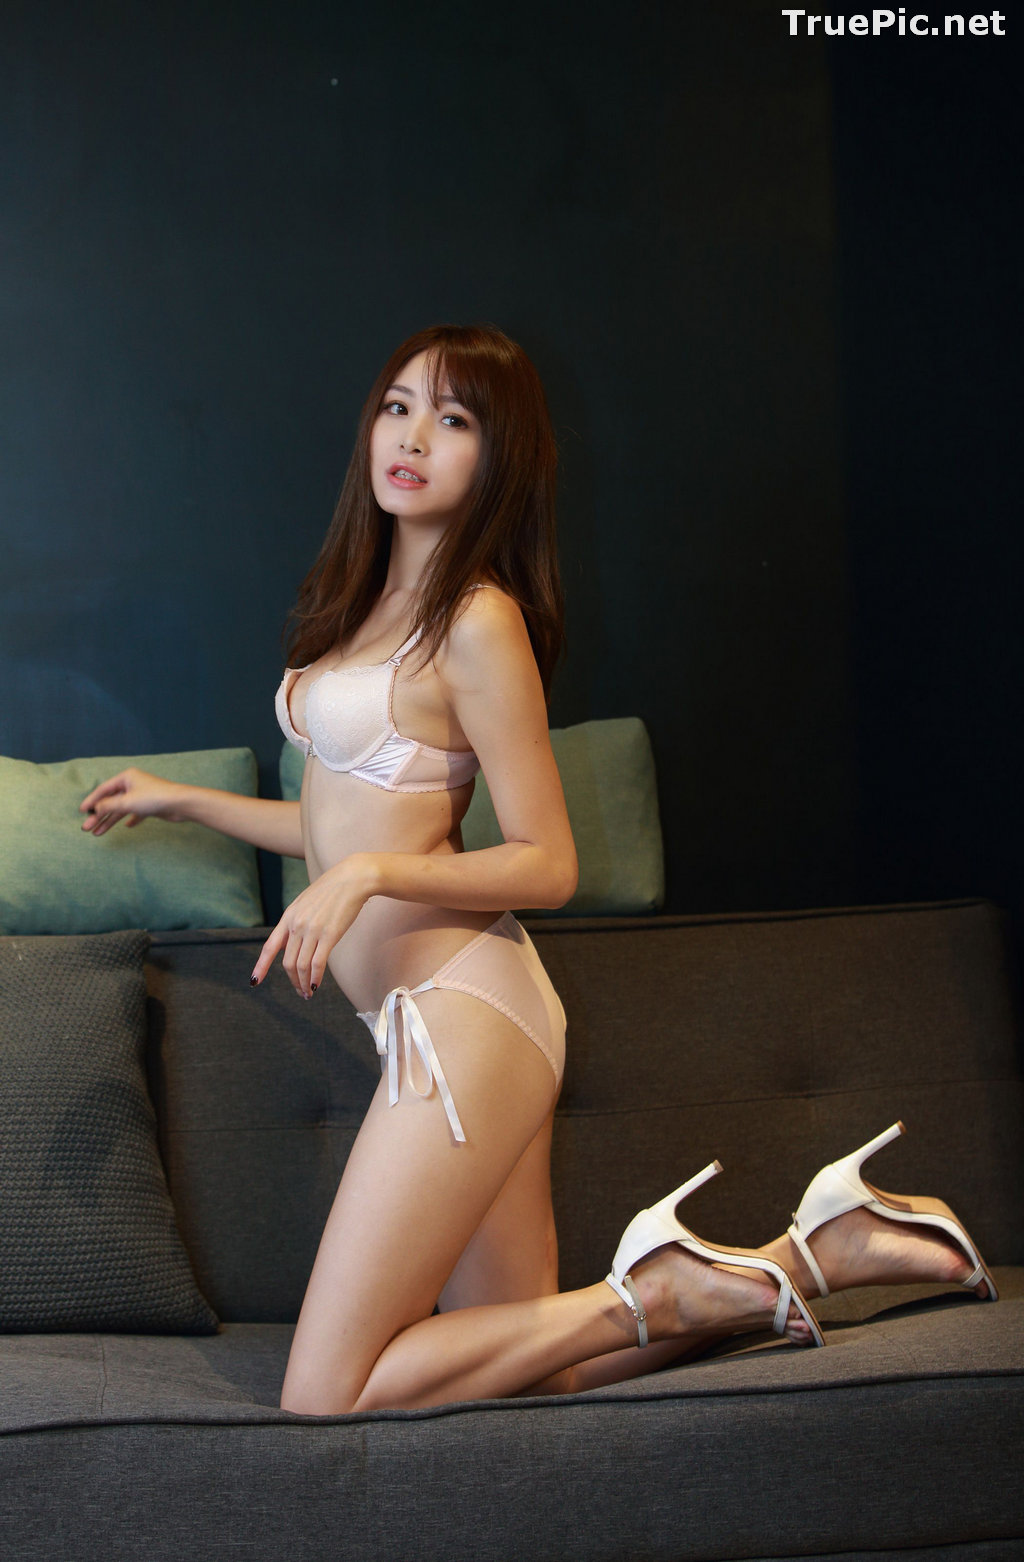 Image Taiwanese Model - Ash Ley - Sexy Girl and White Lingerie - TruePic.net - Picture-1